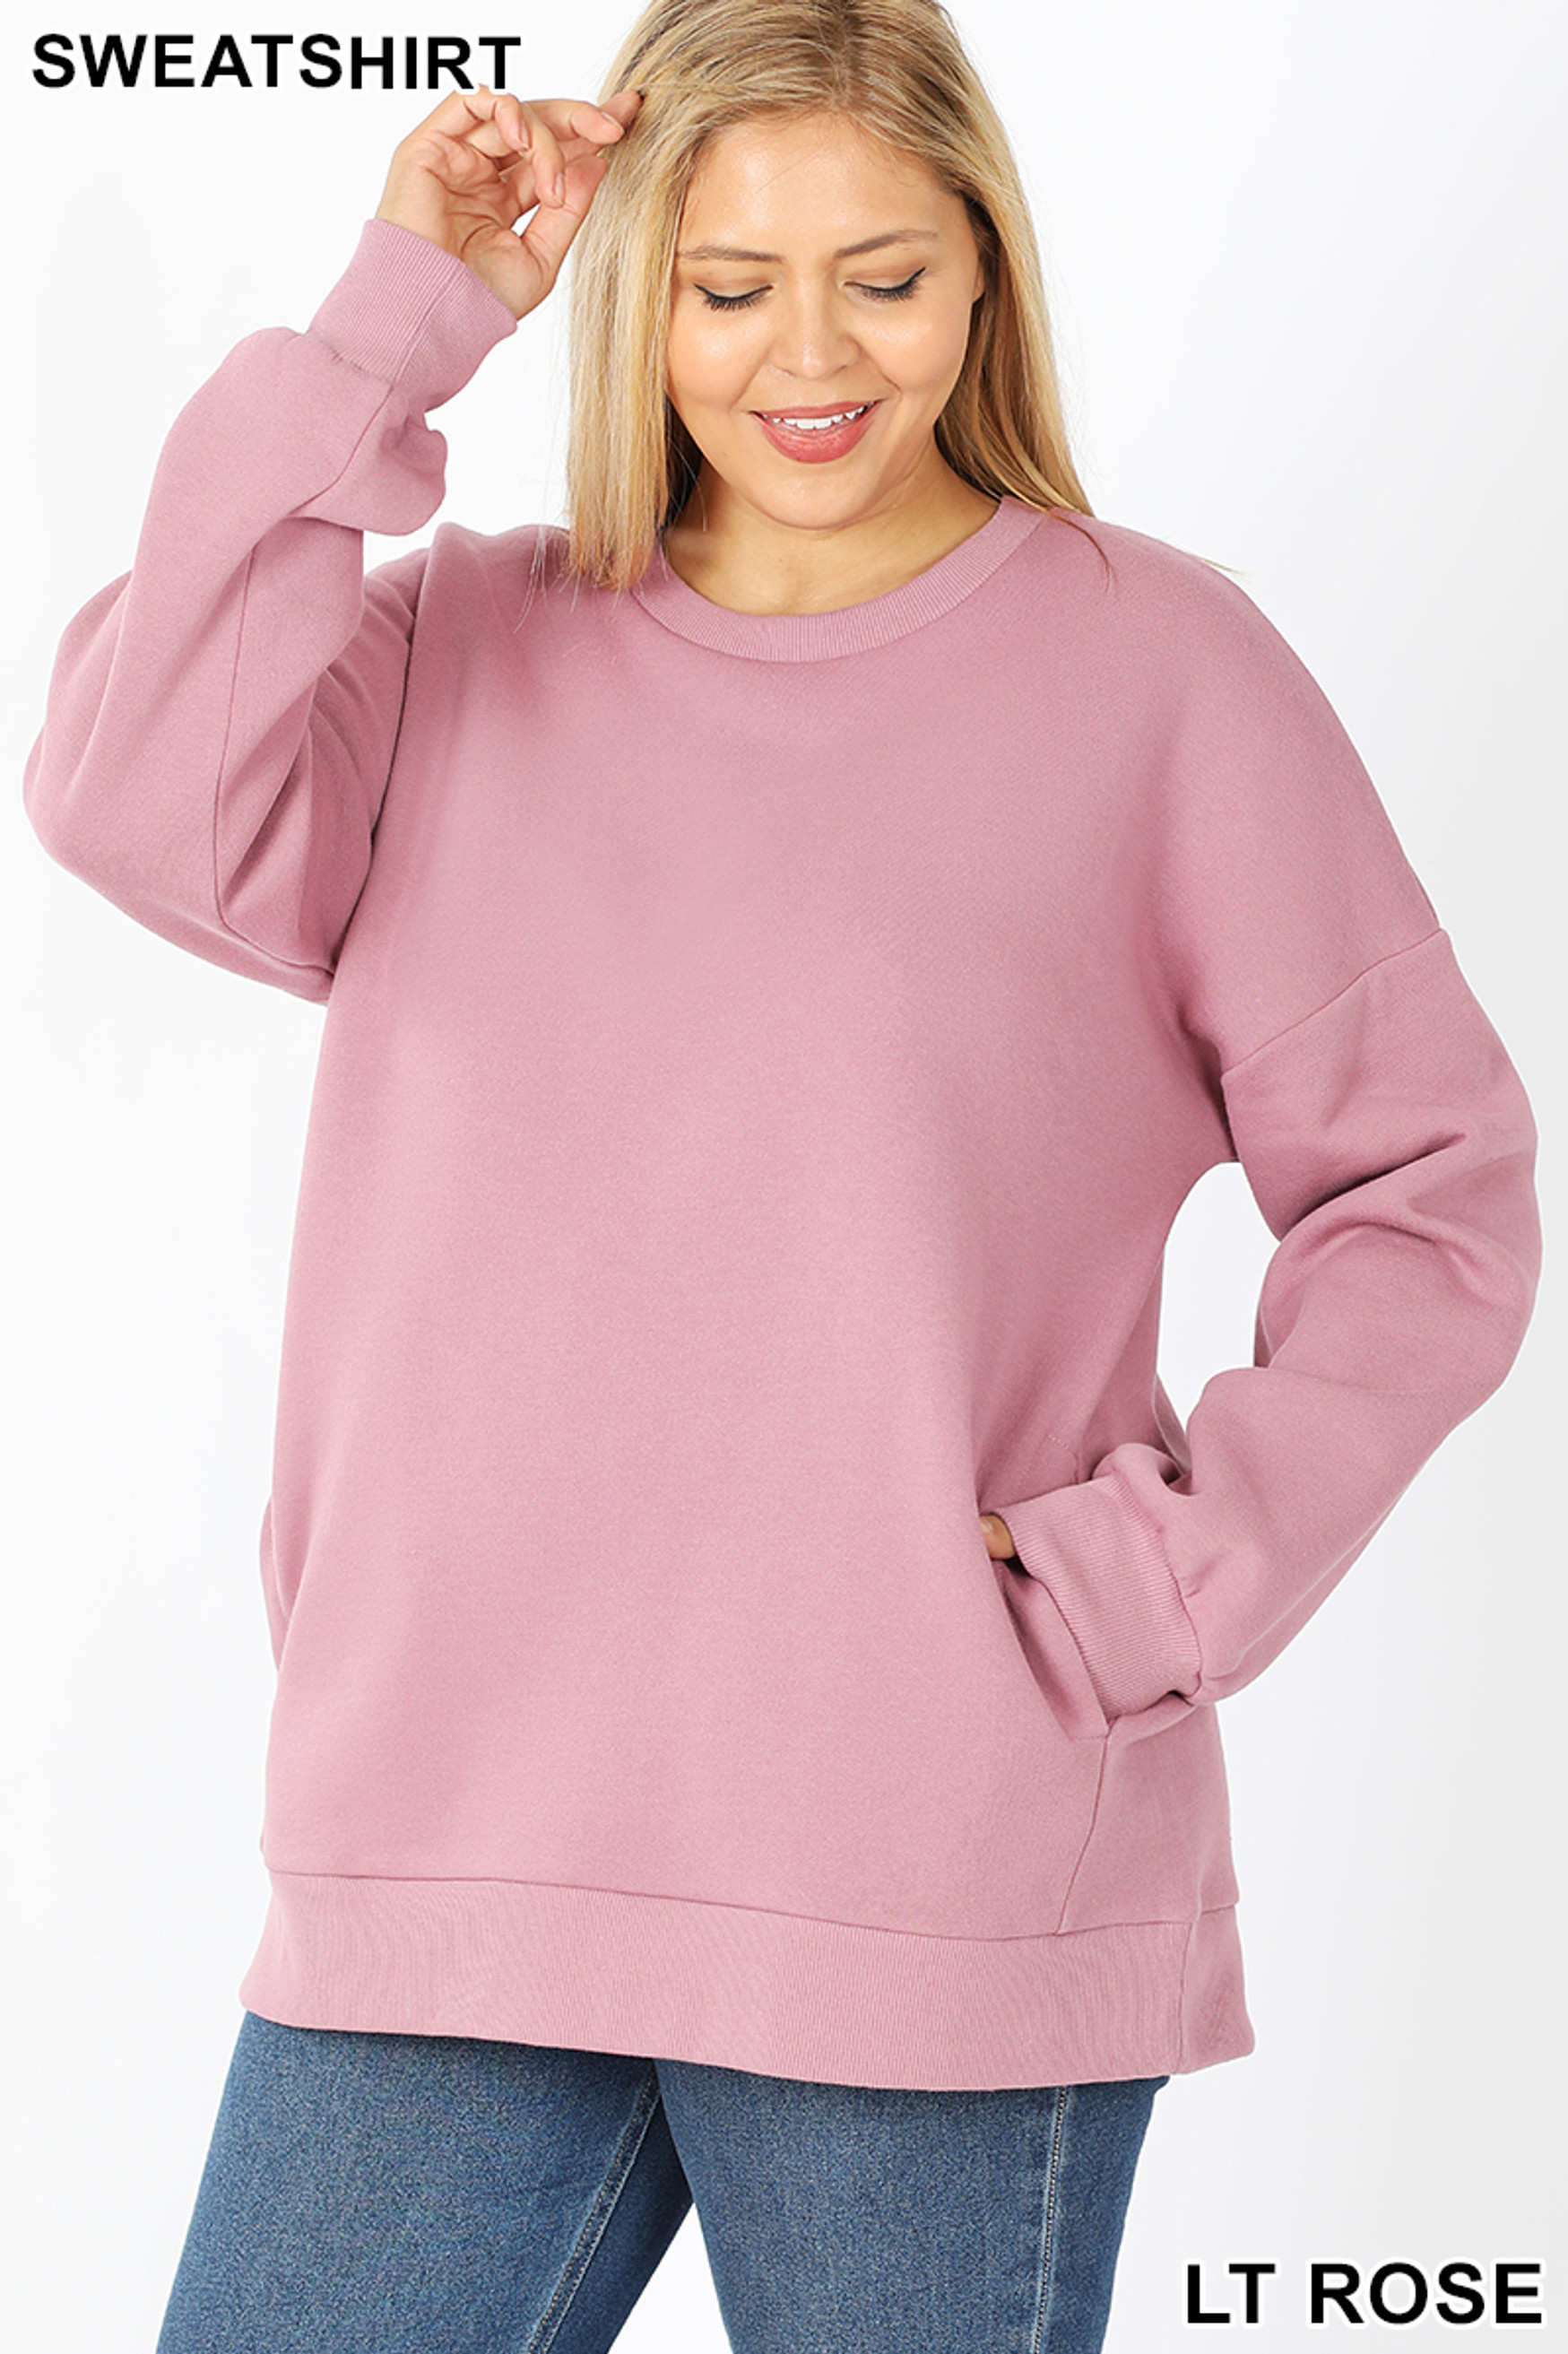 Front image of Light Rose Cotton Round Crew Neck Plus Size Sweatshirt with Side Pockets